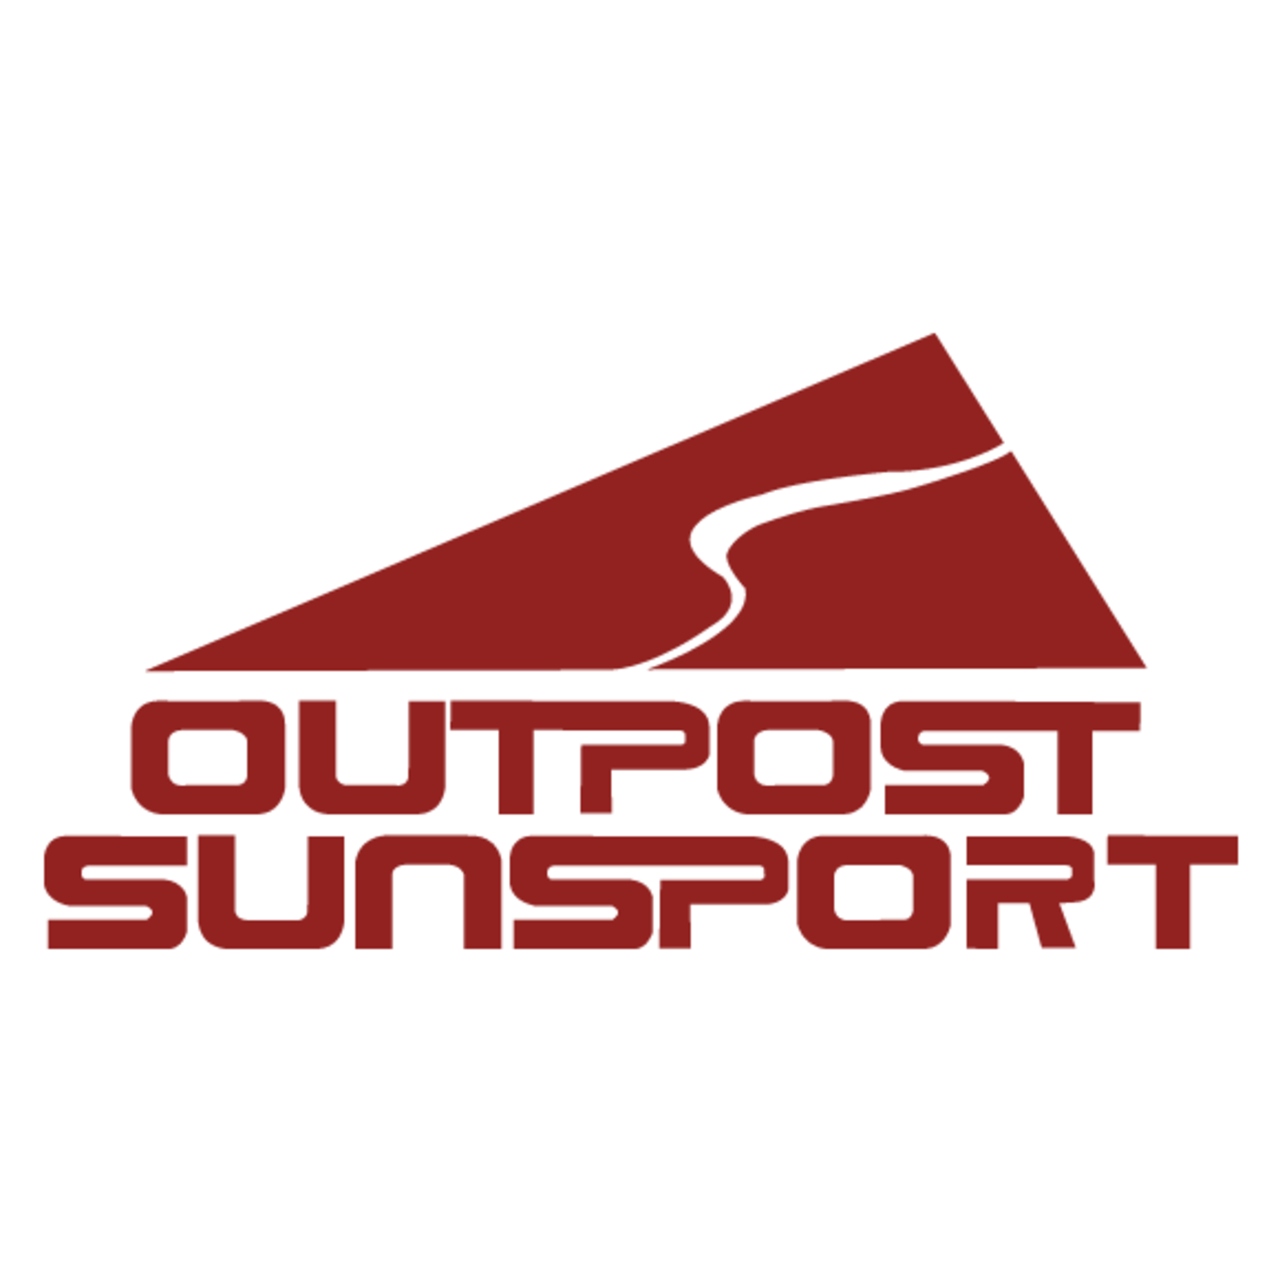 Outpost Sunsport - Shopping - Home Furnishings in Fort Collins CO